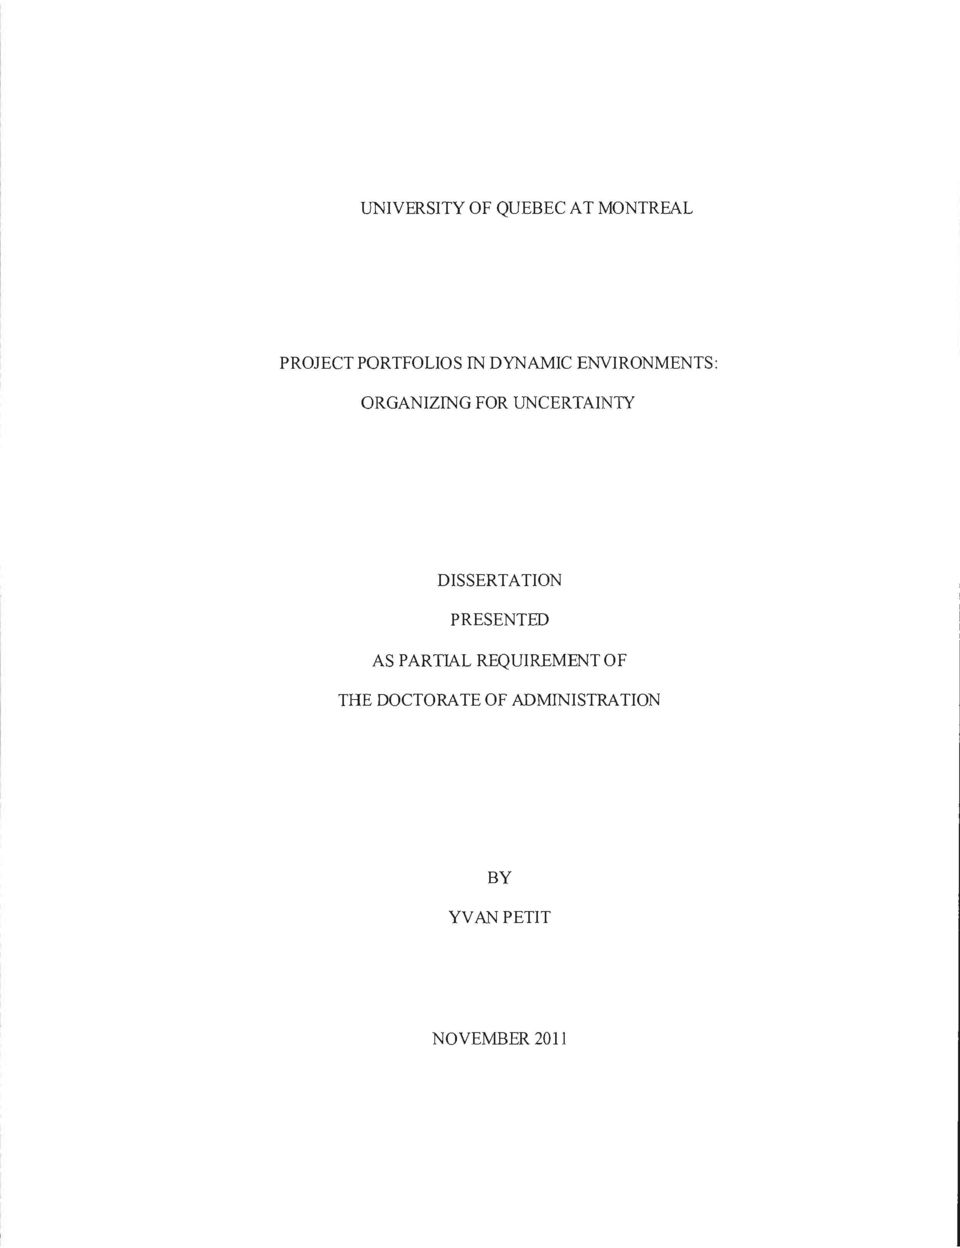 DISSERTATION PRESENTED AS PARTIAL REQUIREMENTOF THE